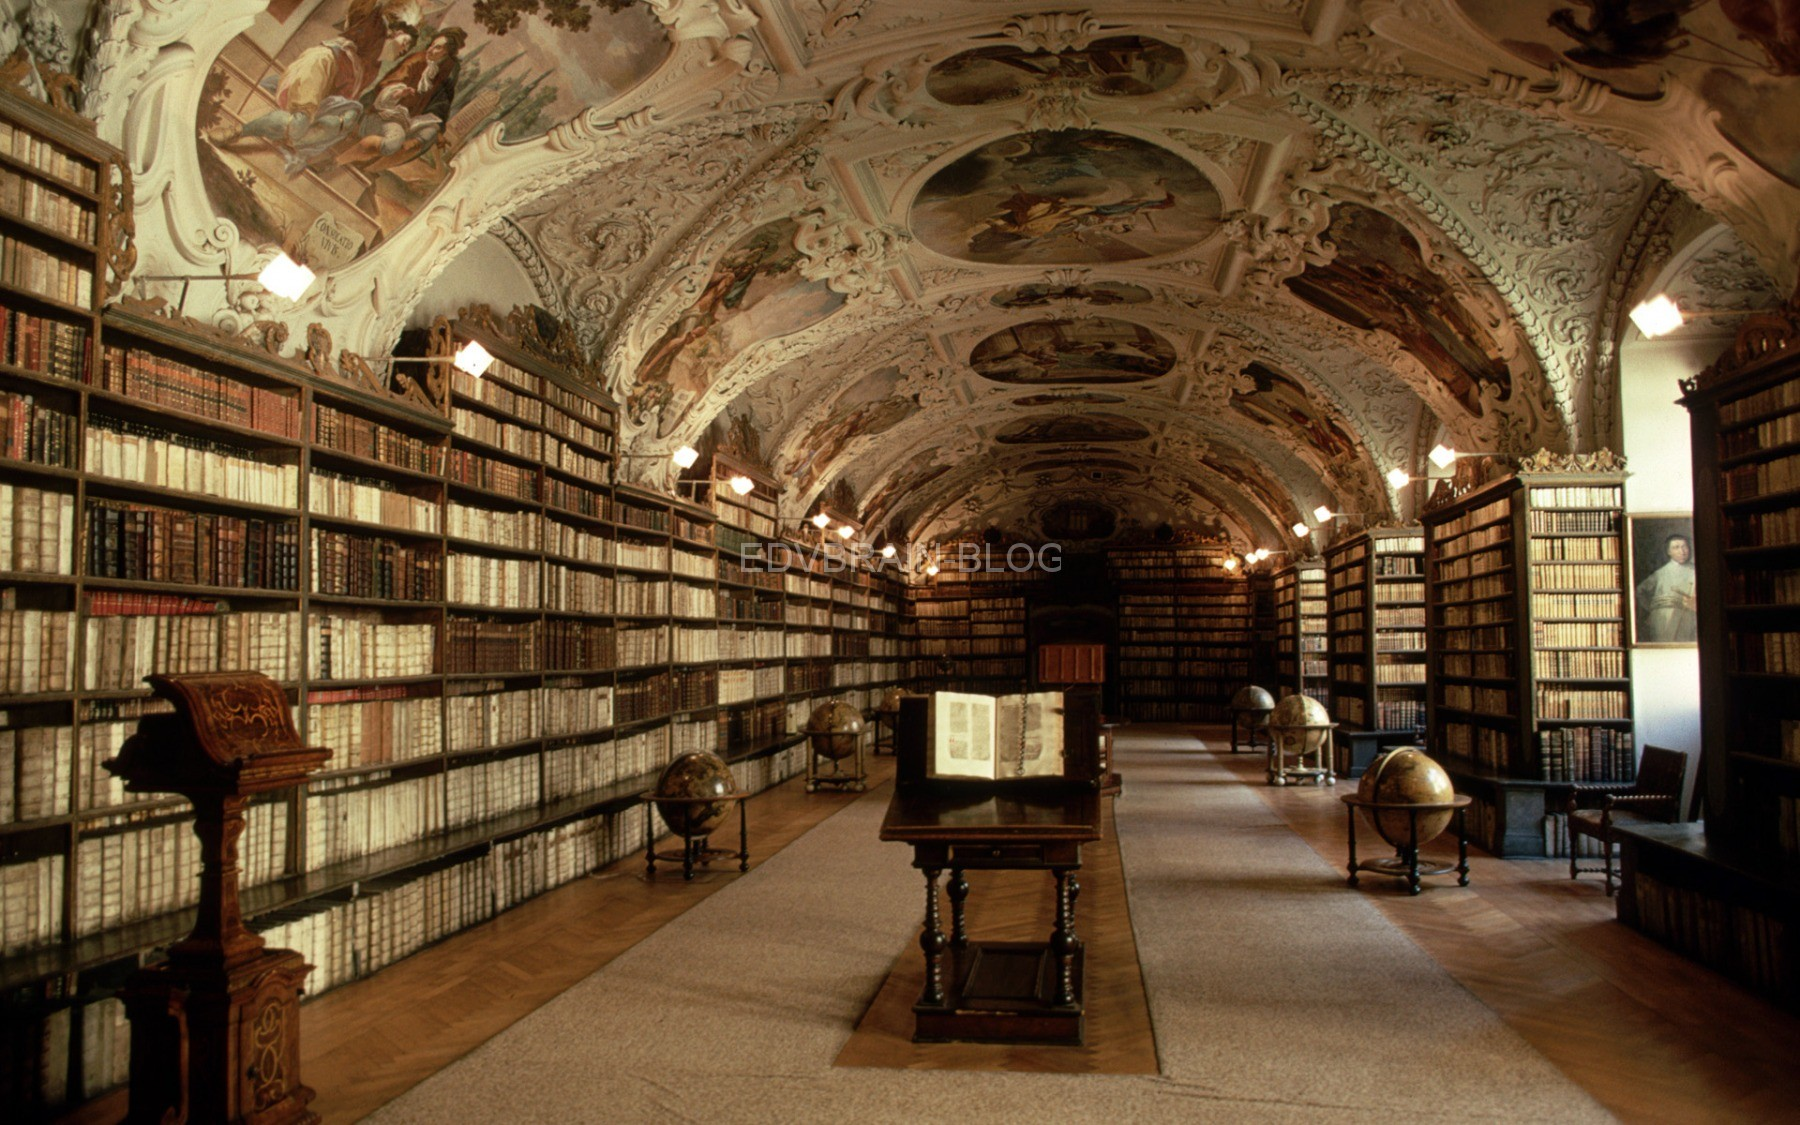 Interior of the Strahov Library, Prague, Czech Republic